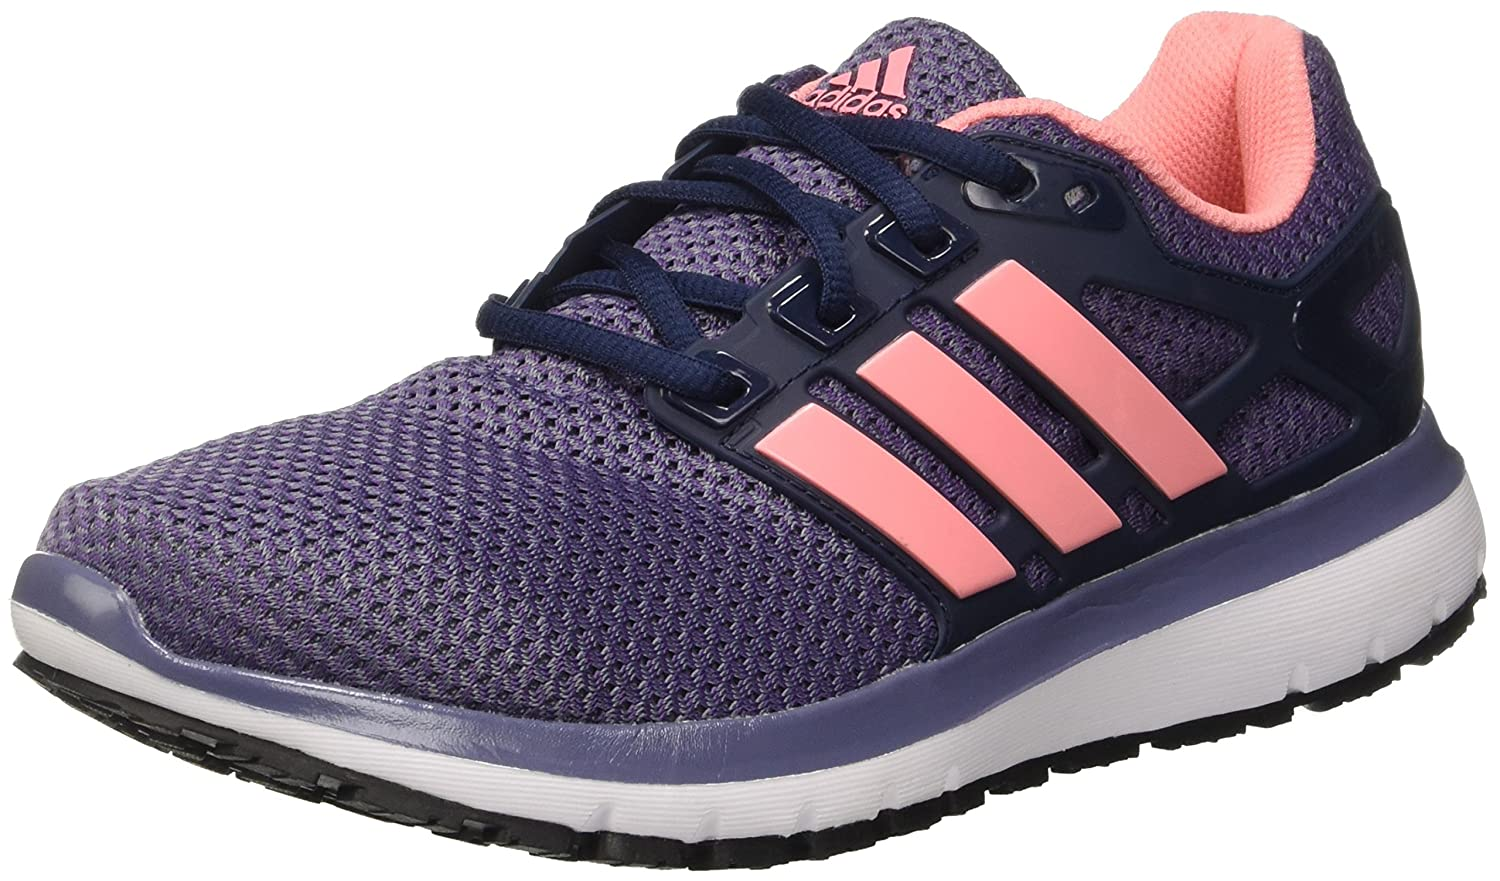 adidas Damen Energy Cloud W Laufschuhe  36 EU|Multicolore (Suppur/Raypnk/Unipur)